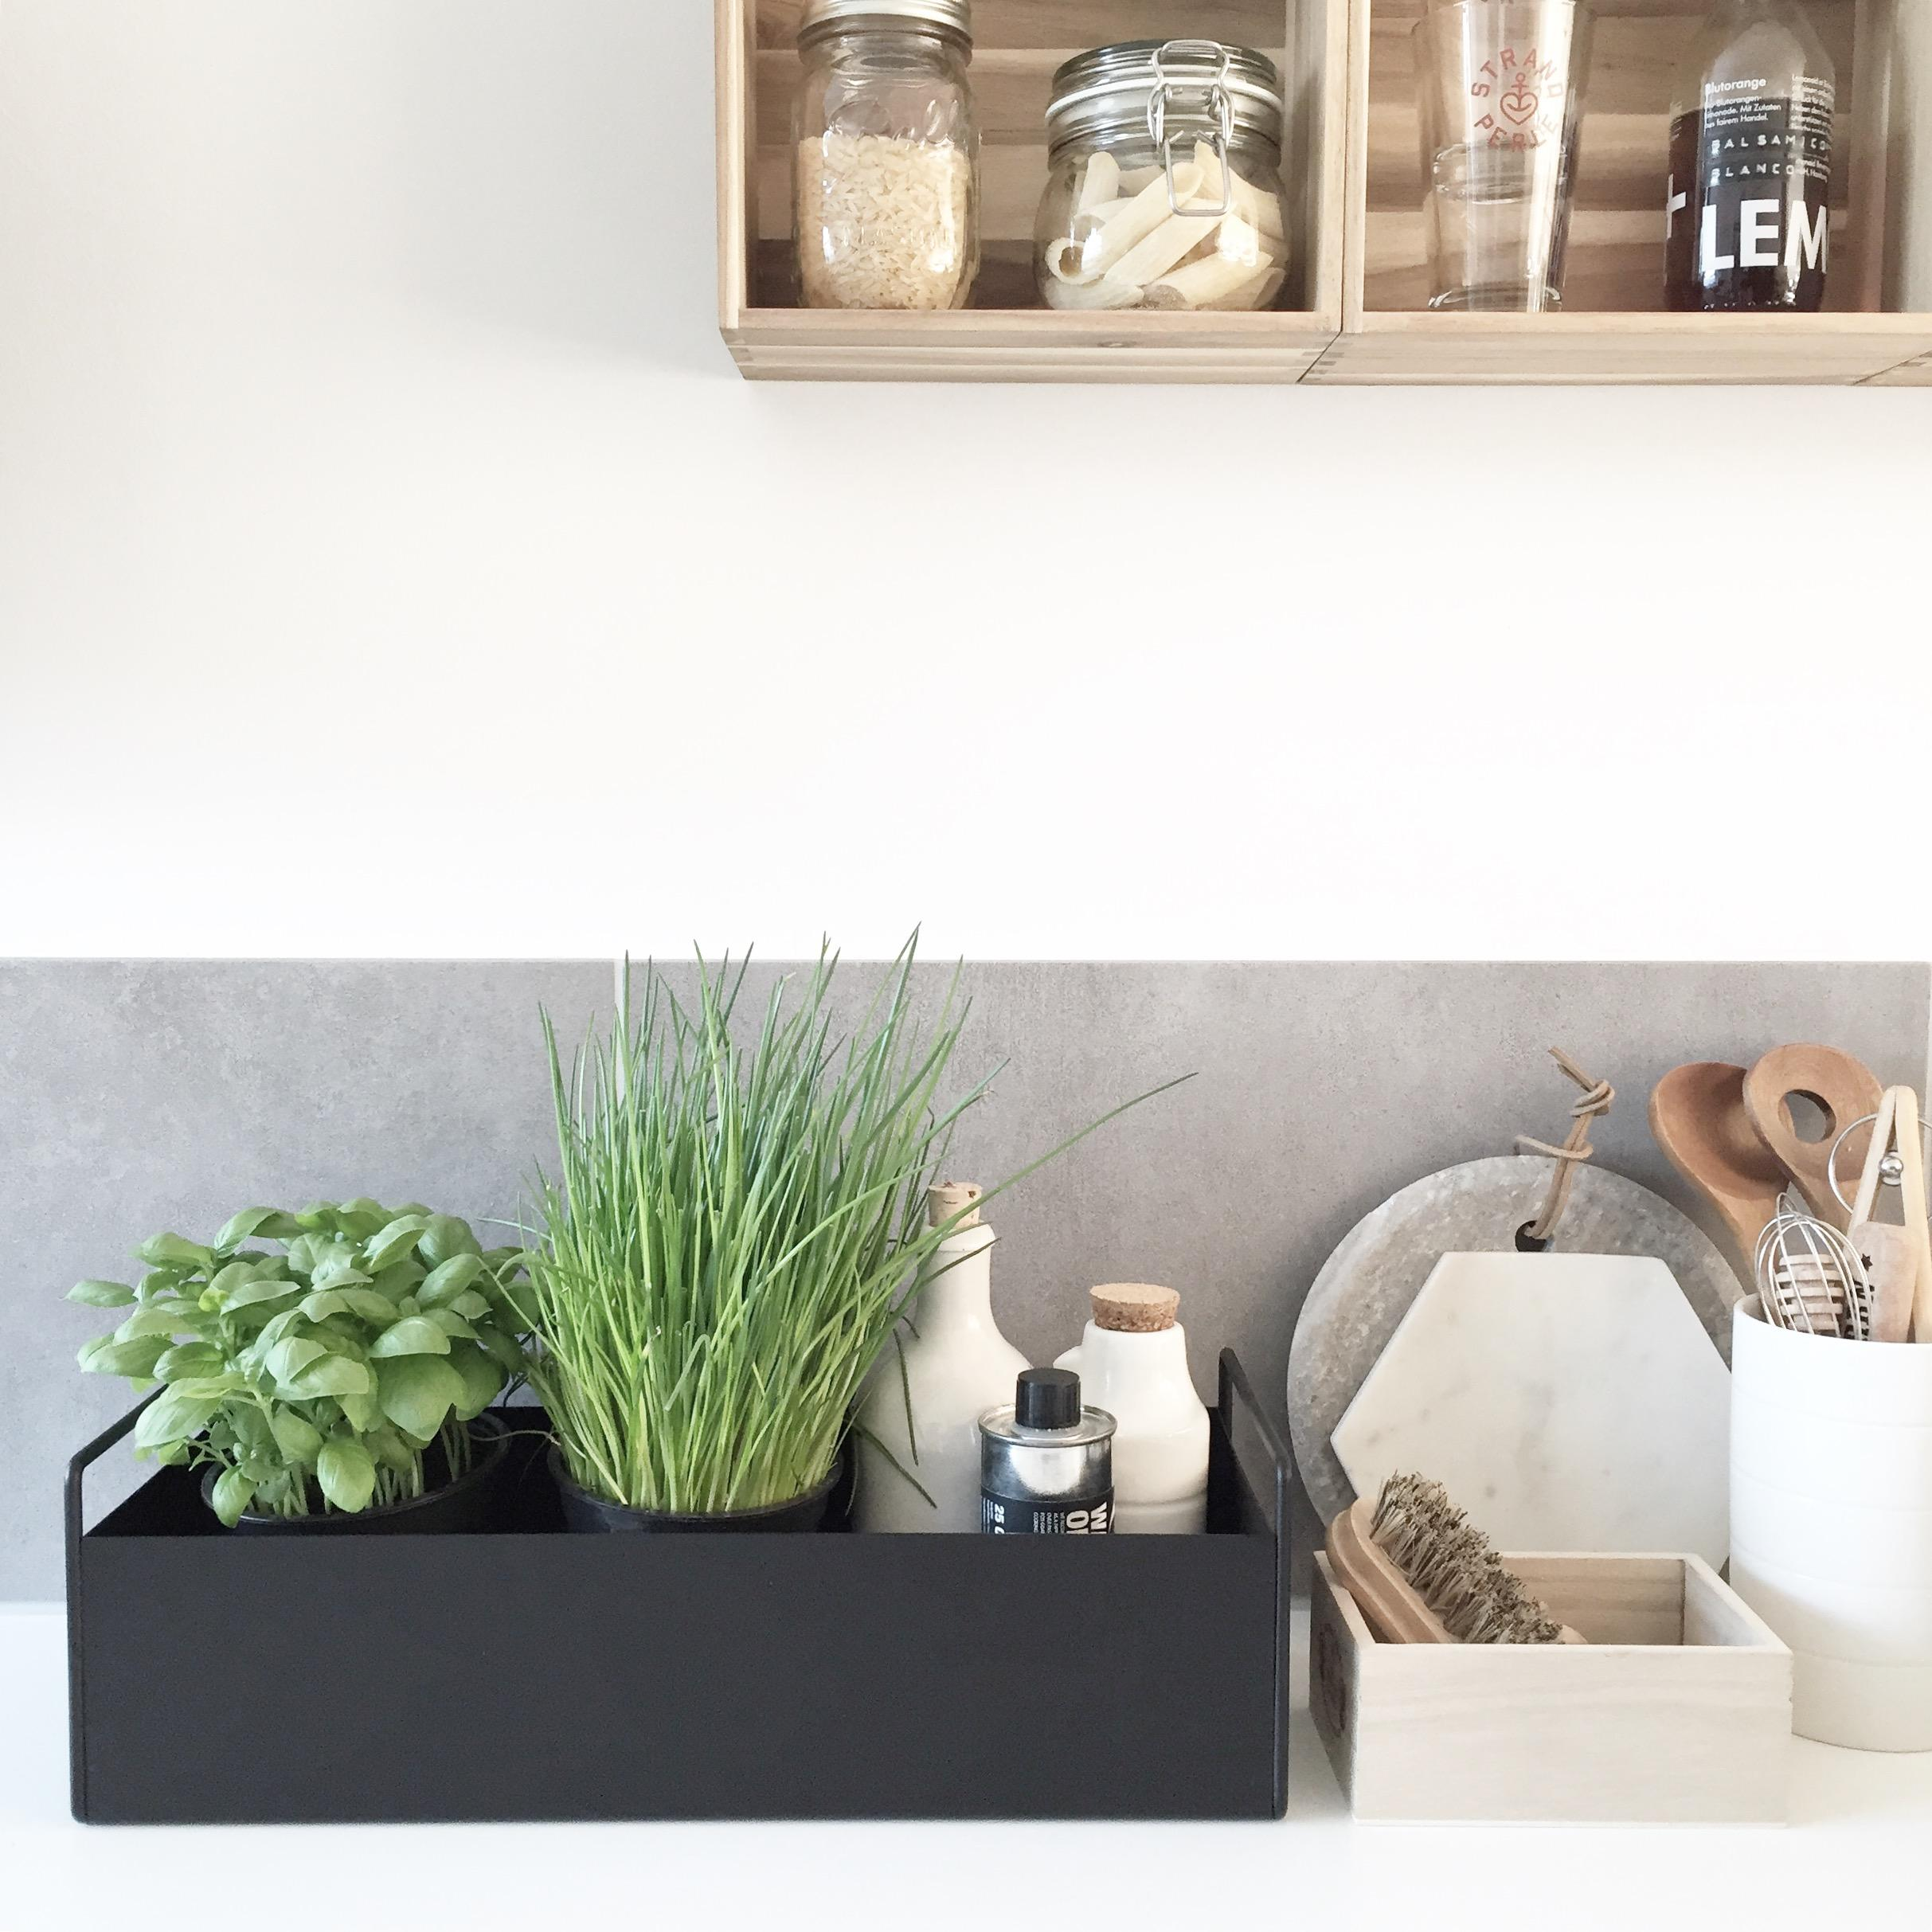 Plantbox in der kueche  scandi interior fermliving plantbox kitchen kraeutergarten  27f3a780 7de4 44ed b099 316fb0246d2c